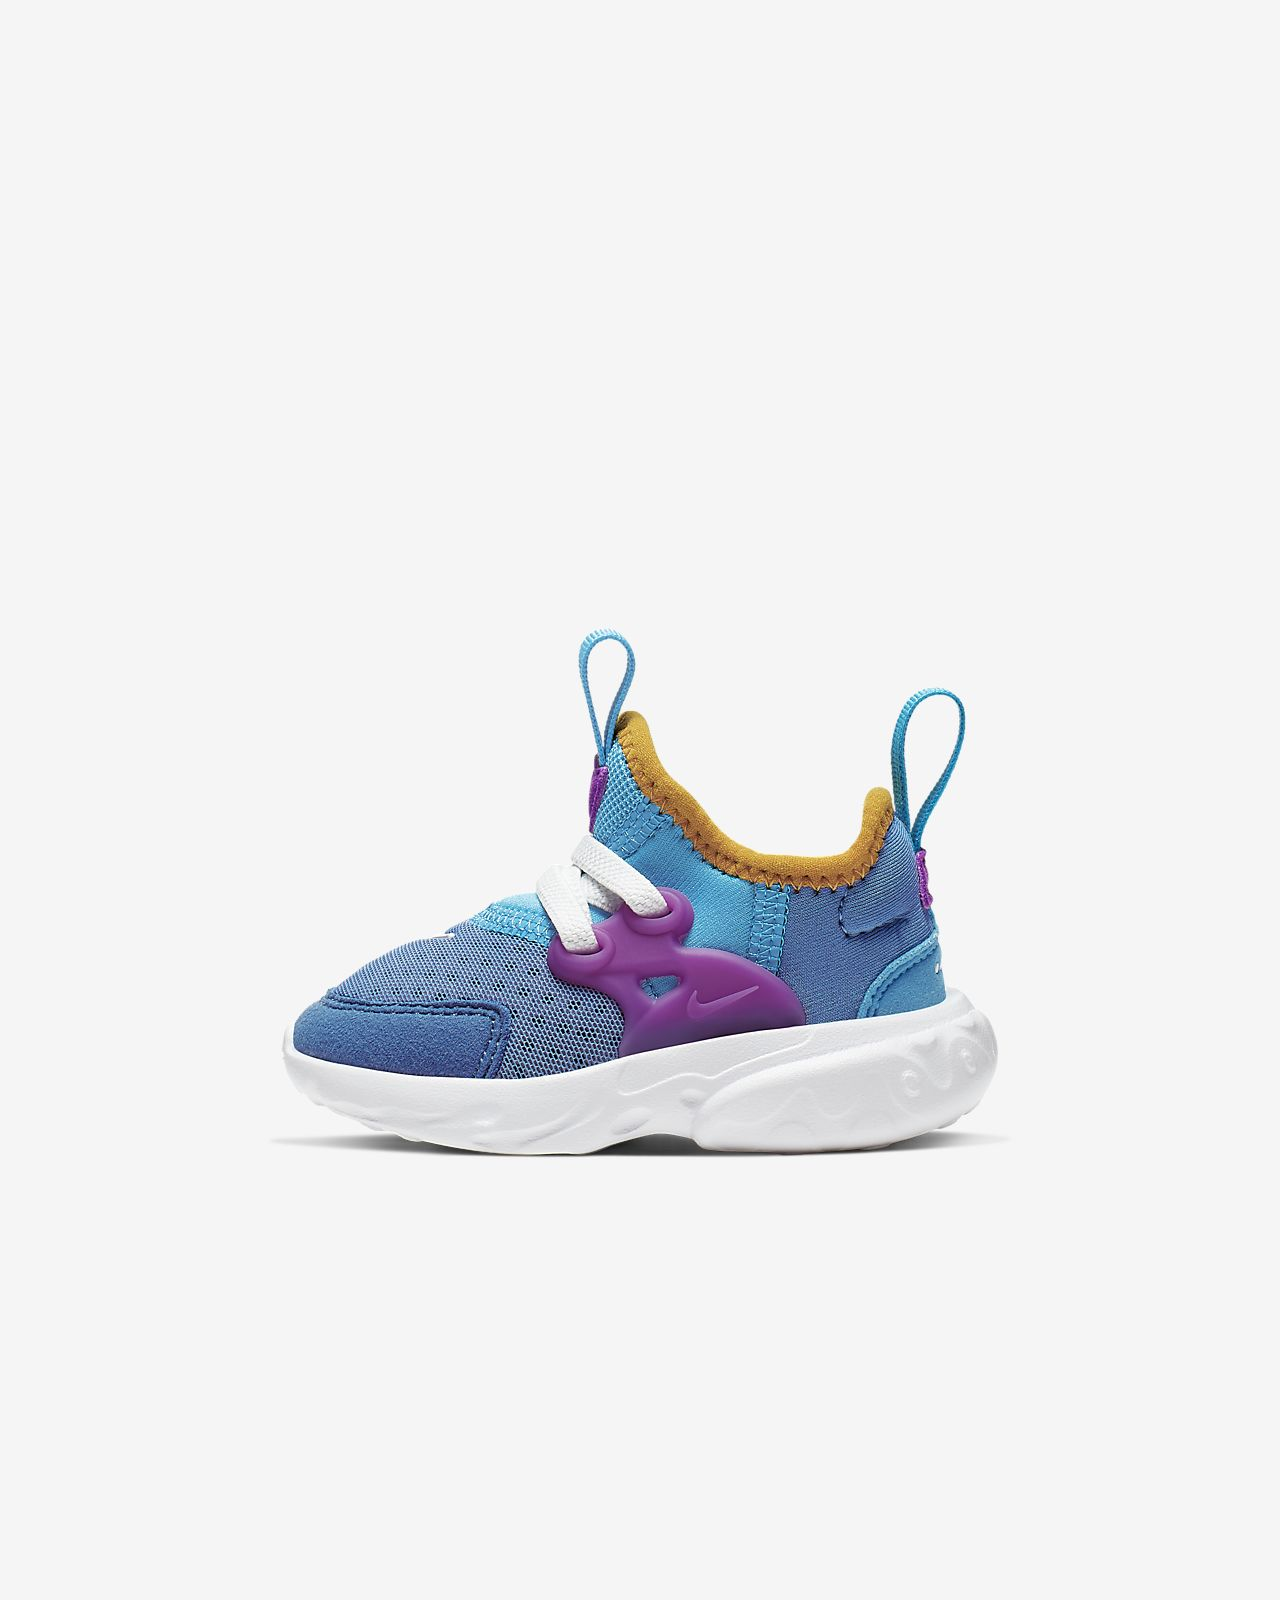 Nike Presto Infant/Toddler Shoe